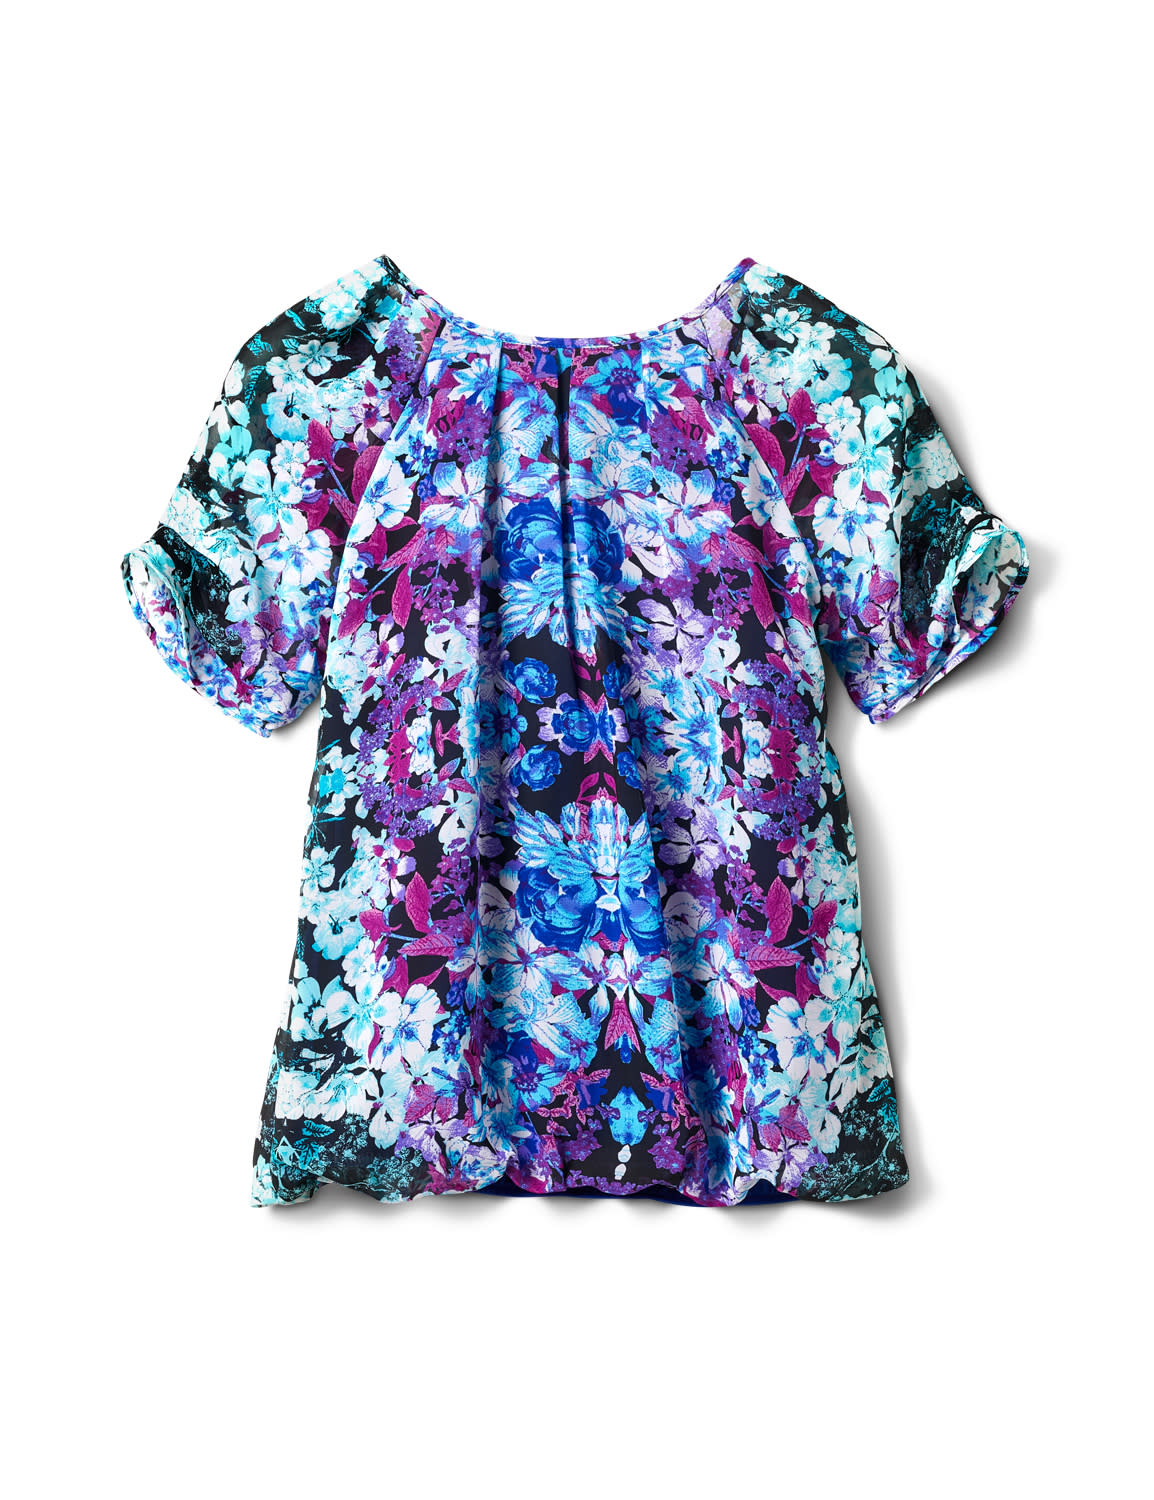 Pleat Sleeve Placement Print Bubble Hem Blouse - Purple/Turq/Blk - Back